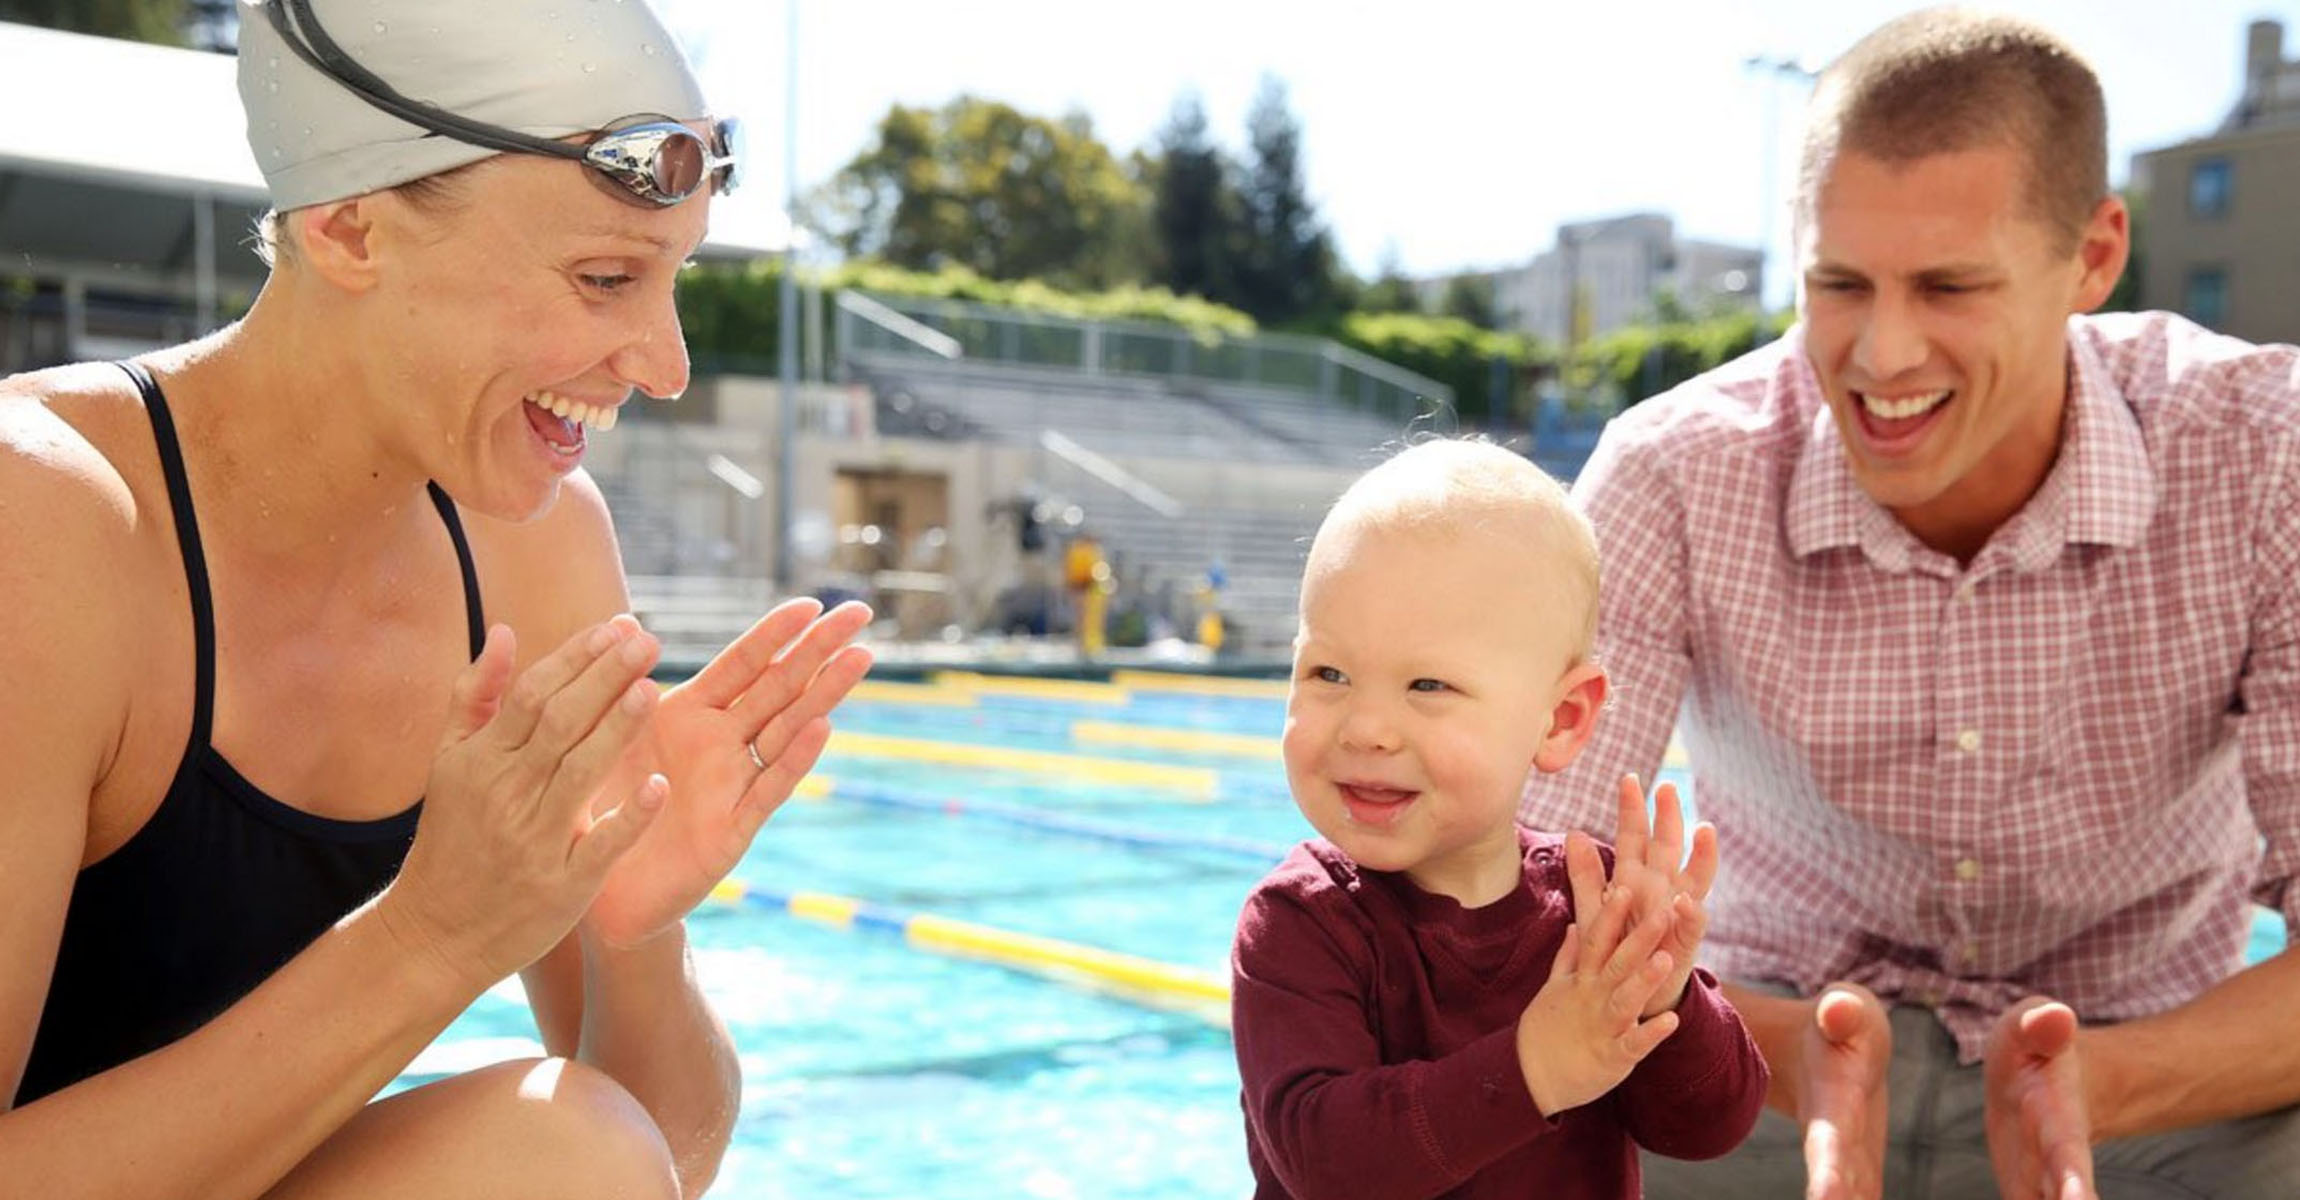 Pampers 2016 Olympic Campaign with Dana Vollmer | Agency - Citizen